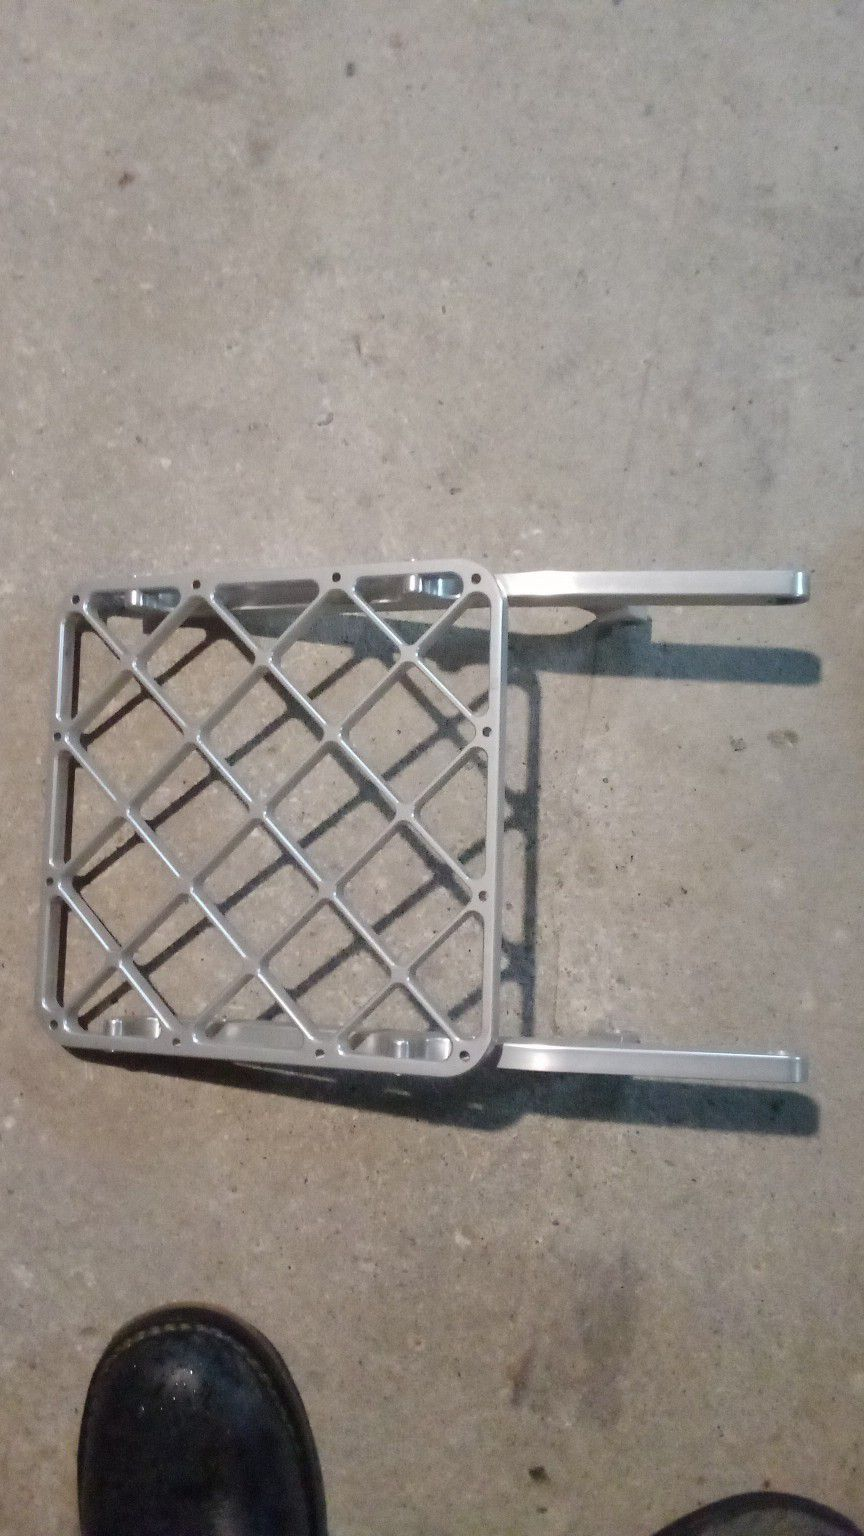 Photo Brand new never used universal Luggage rack for dual sport dirt bikes got it for drz400e an never put it on the bike they are 130$ new Ill take 60$